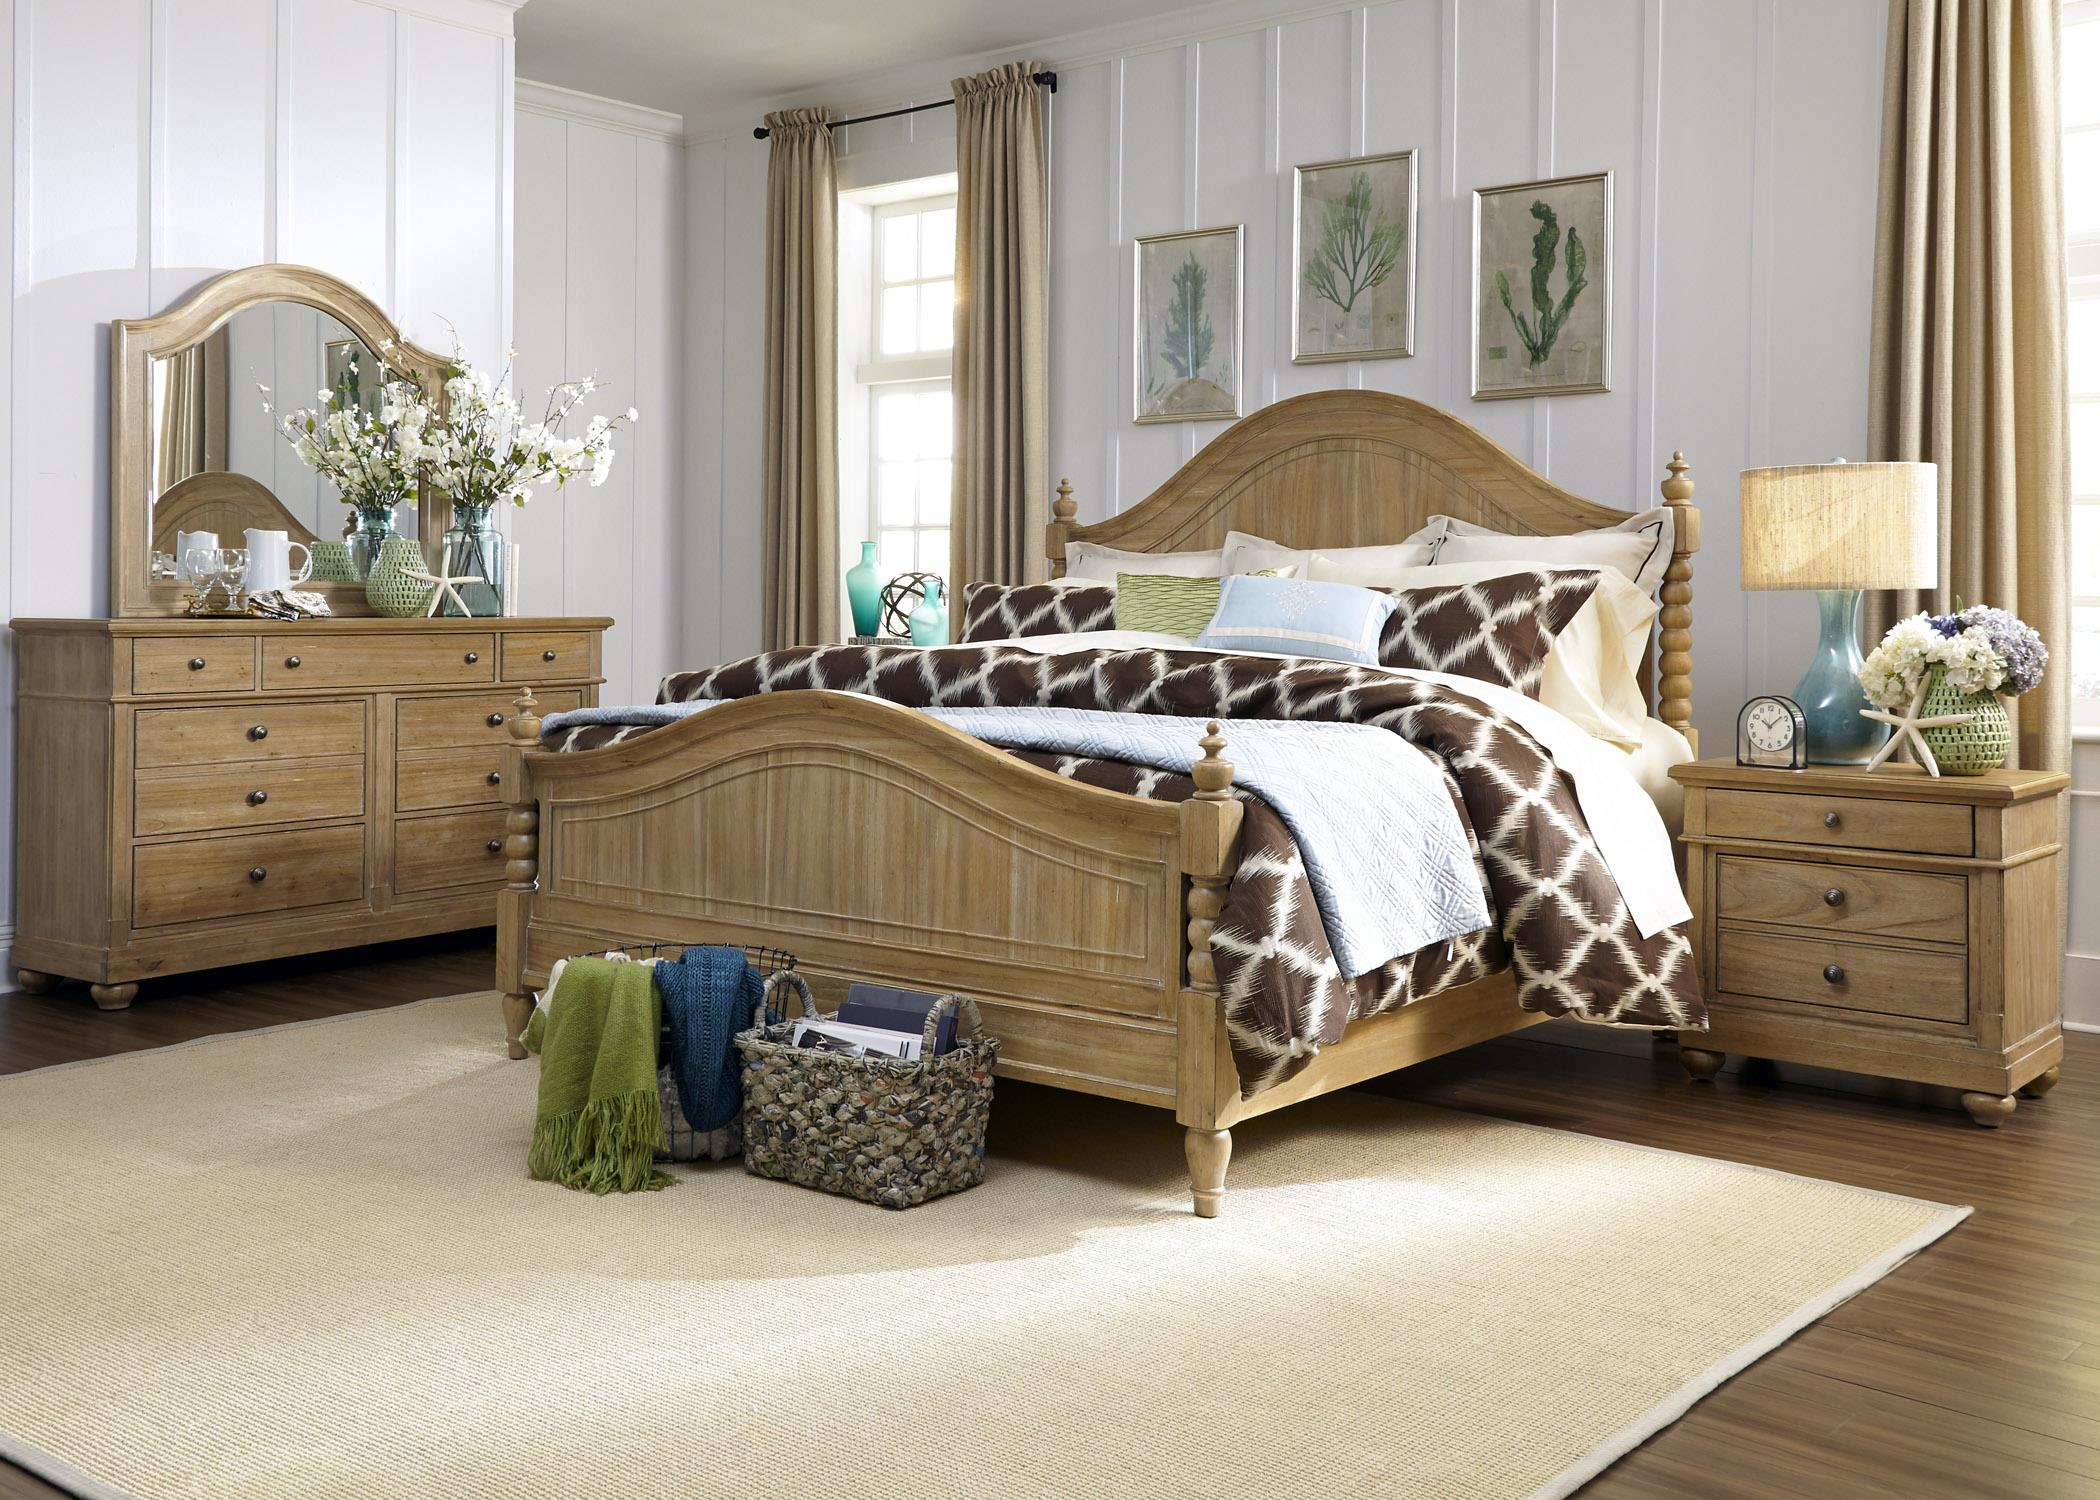 Liberty Furniture Harbor View Queen Bedroom Group - Item Number: 531-BR-QPSDMC